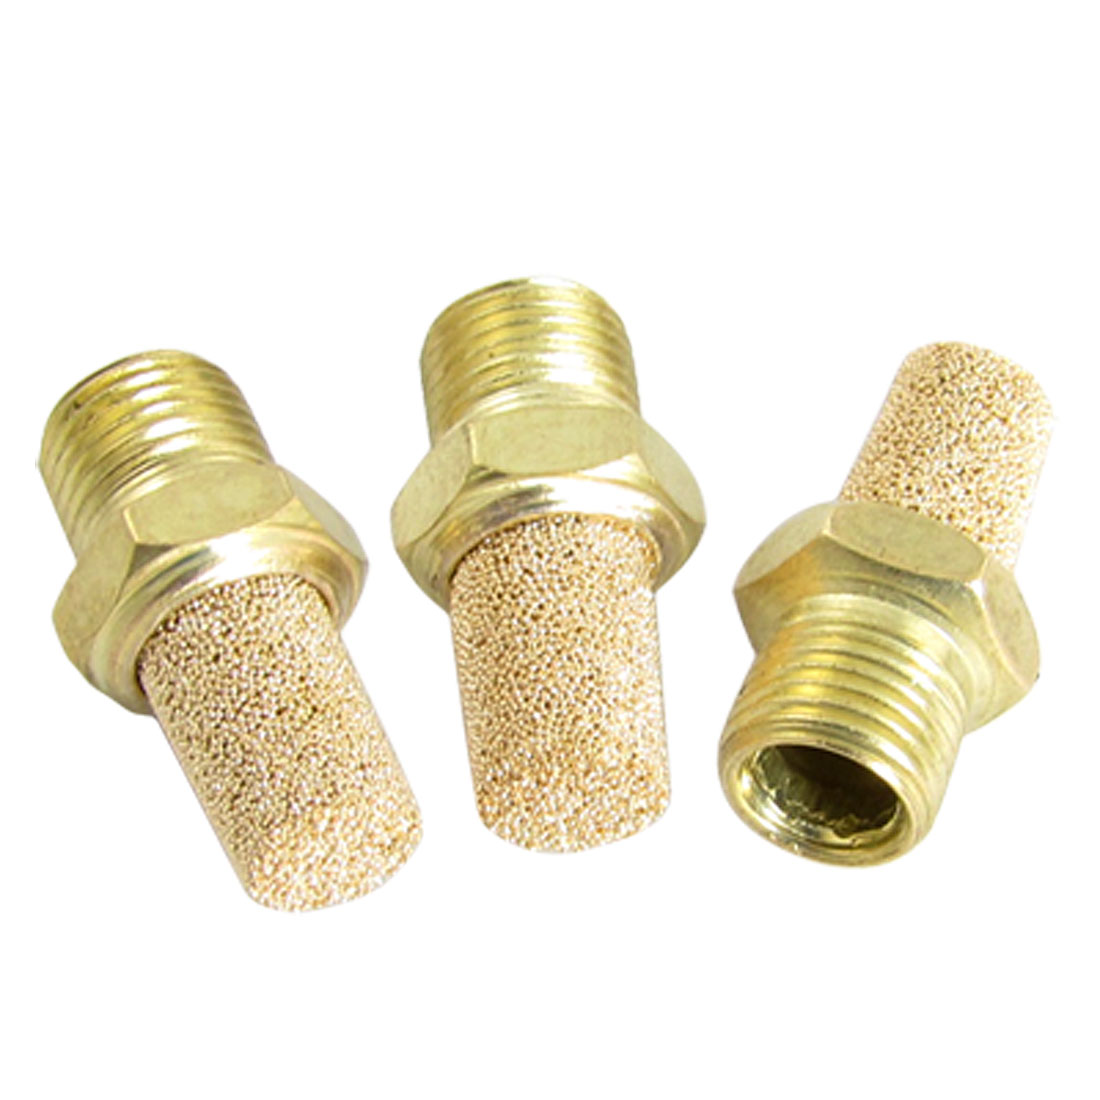 3Pcs Sintered Bronze Pneumatic Exhaust Noise Silencer Muffler